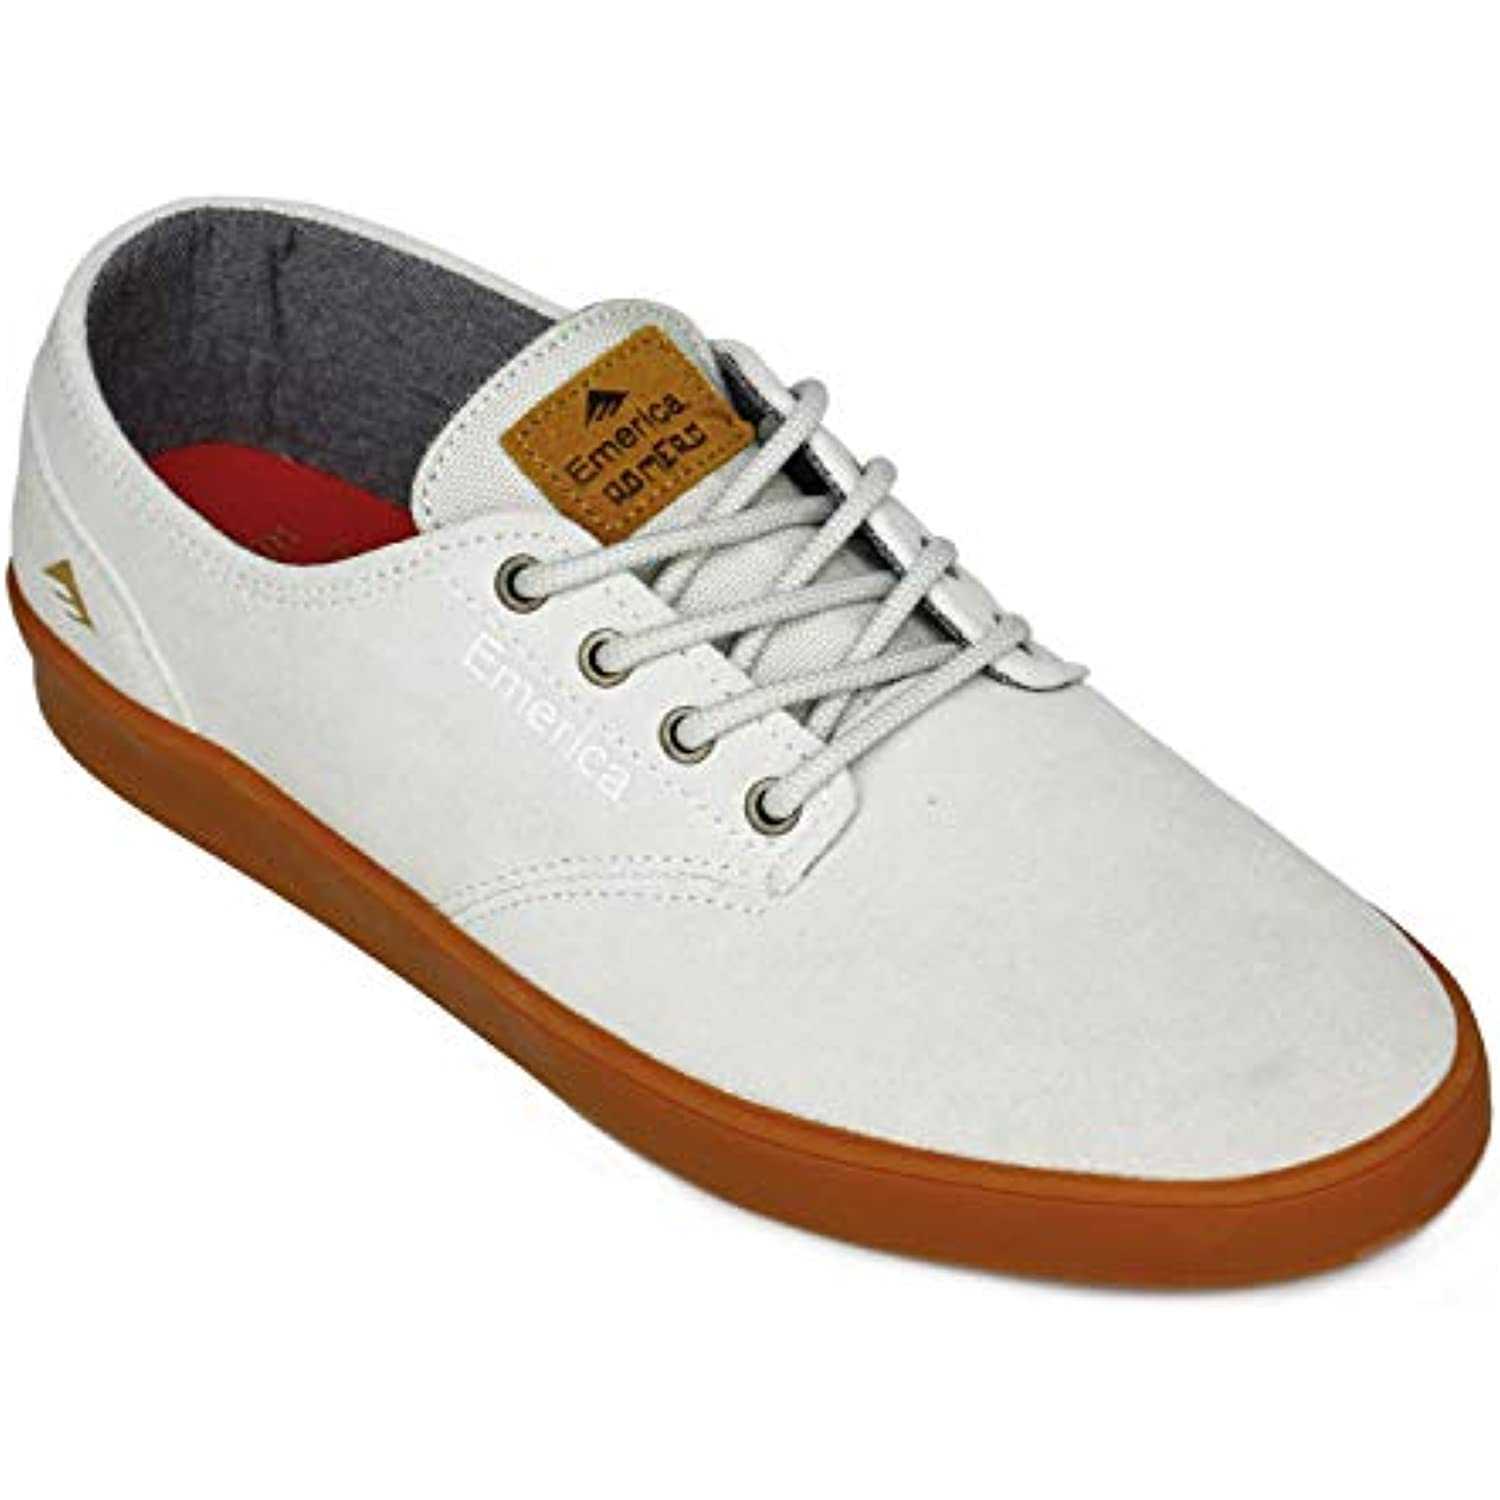 Emerica , Baskets mode pour homme 29 blanc Blanc/gomme 29 homme - B016R90ZOS - 932f91